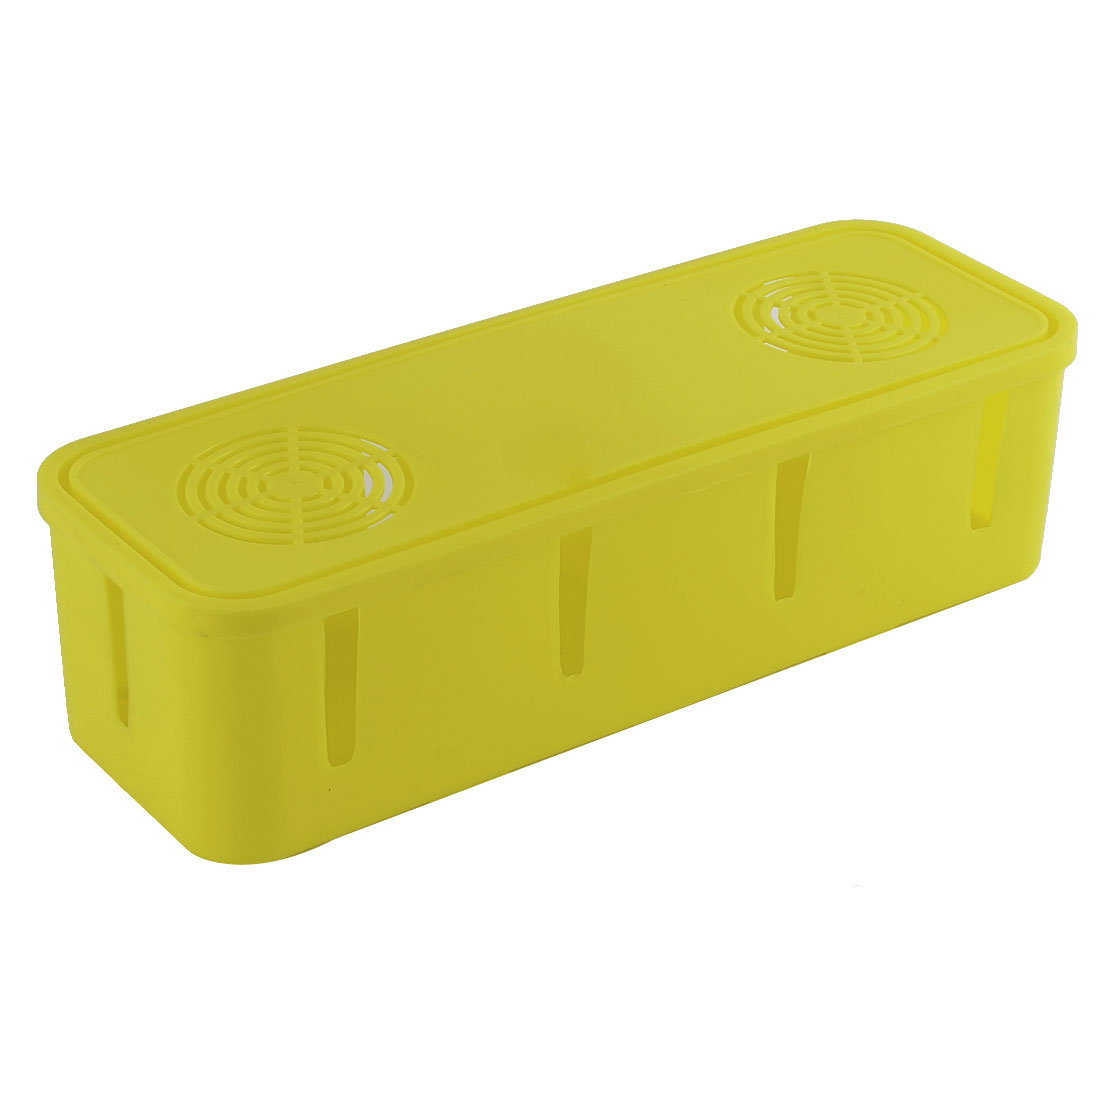 Plastic Rectangle Shape Security Power Cord Socket Storage Case Box Yellow